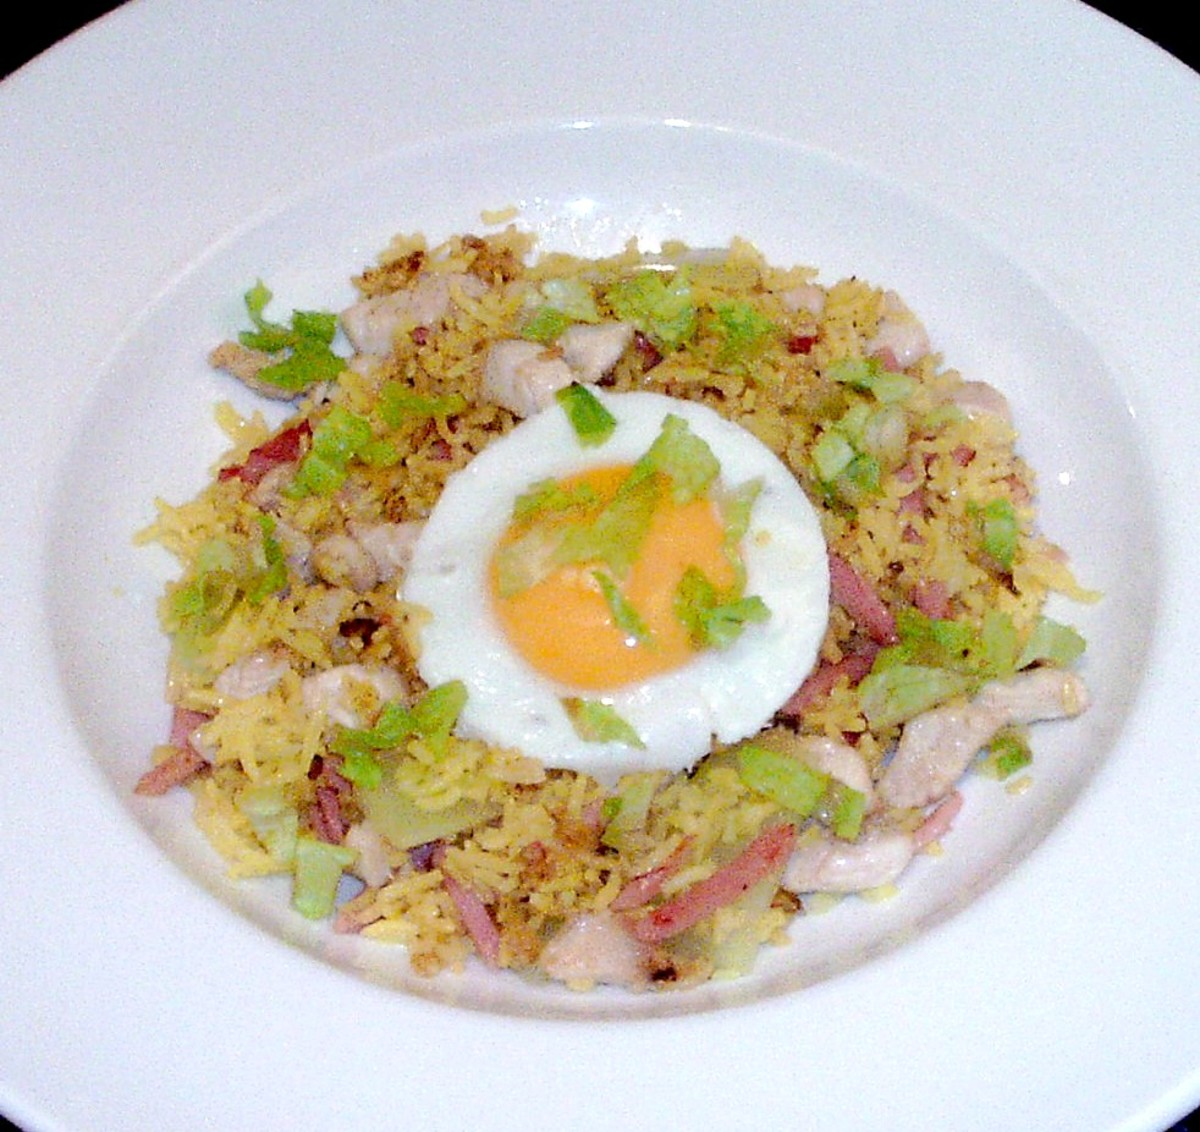 Celtuce, chicken and ham turmeric fried rice with fried egg